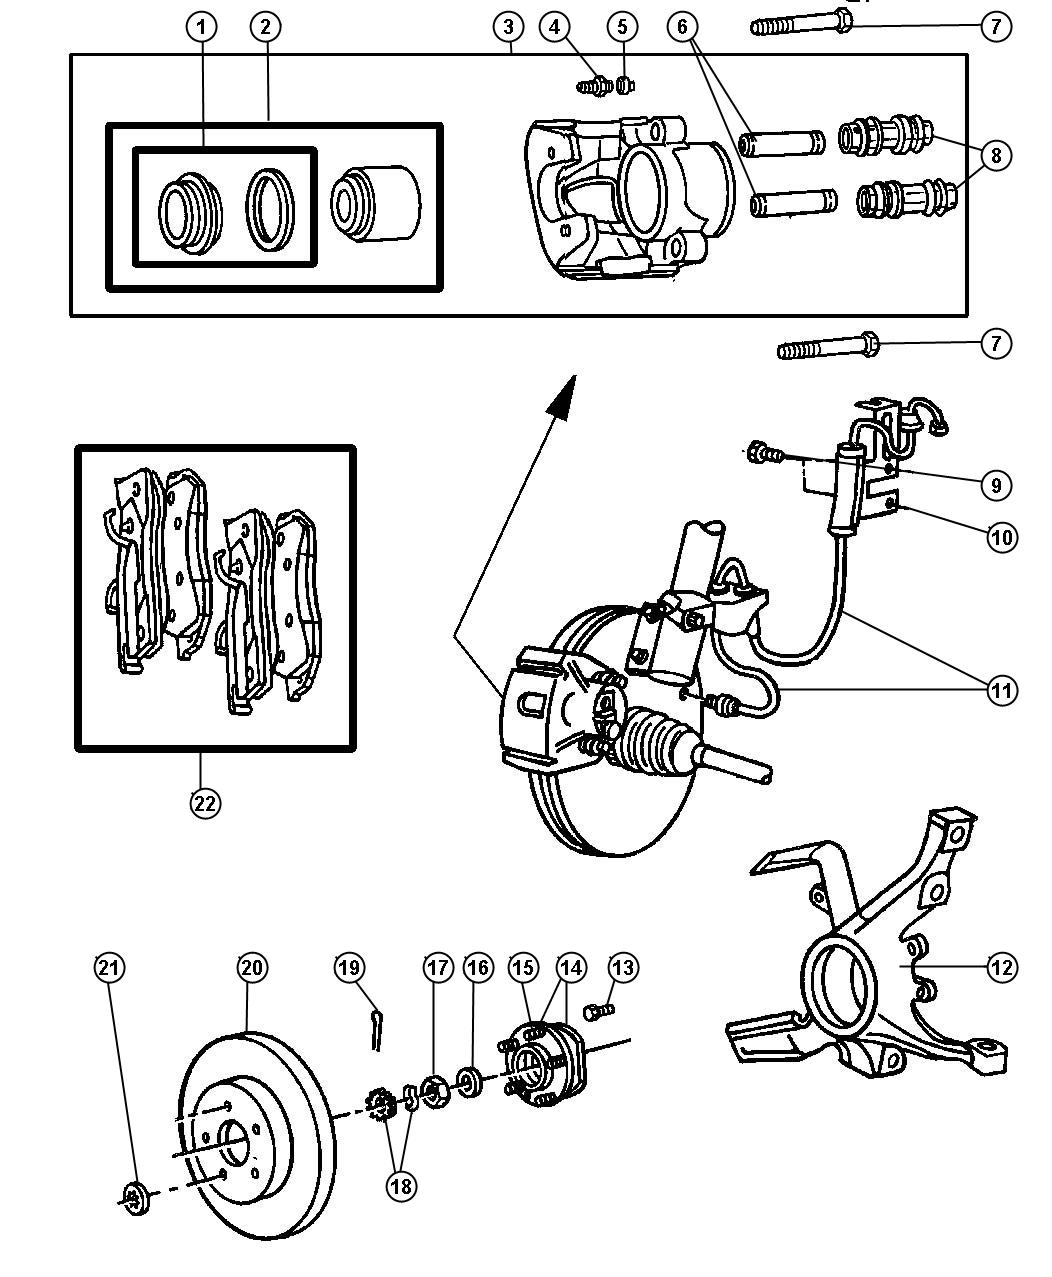 Dodge Nitro Used For Boot And Seal Disc Brake Used For